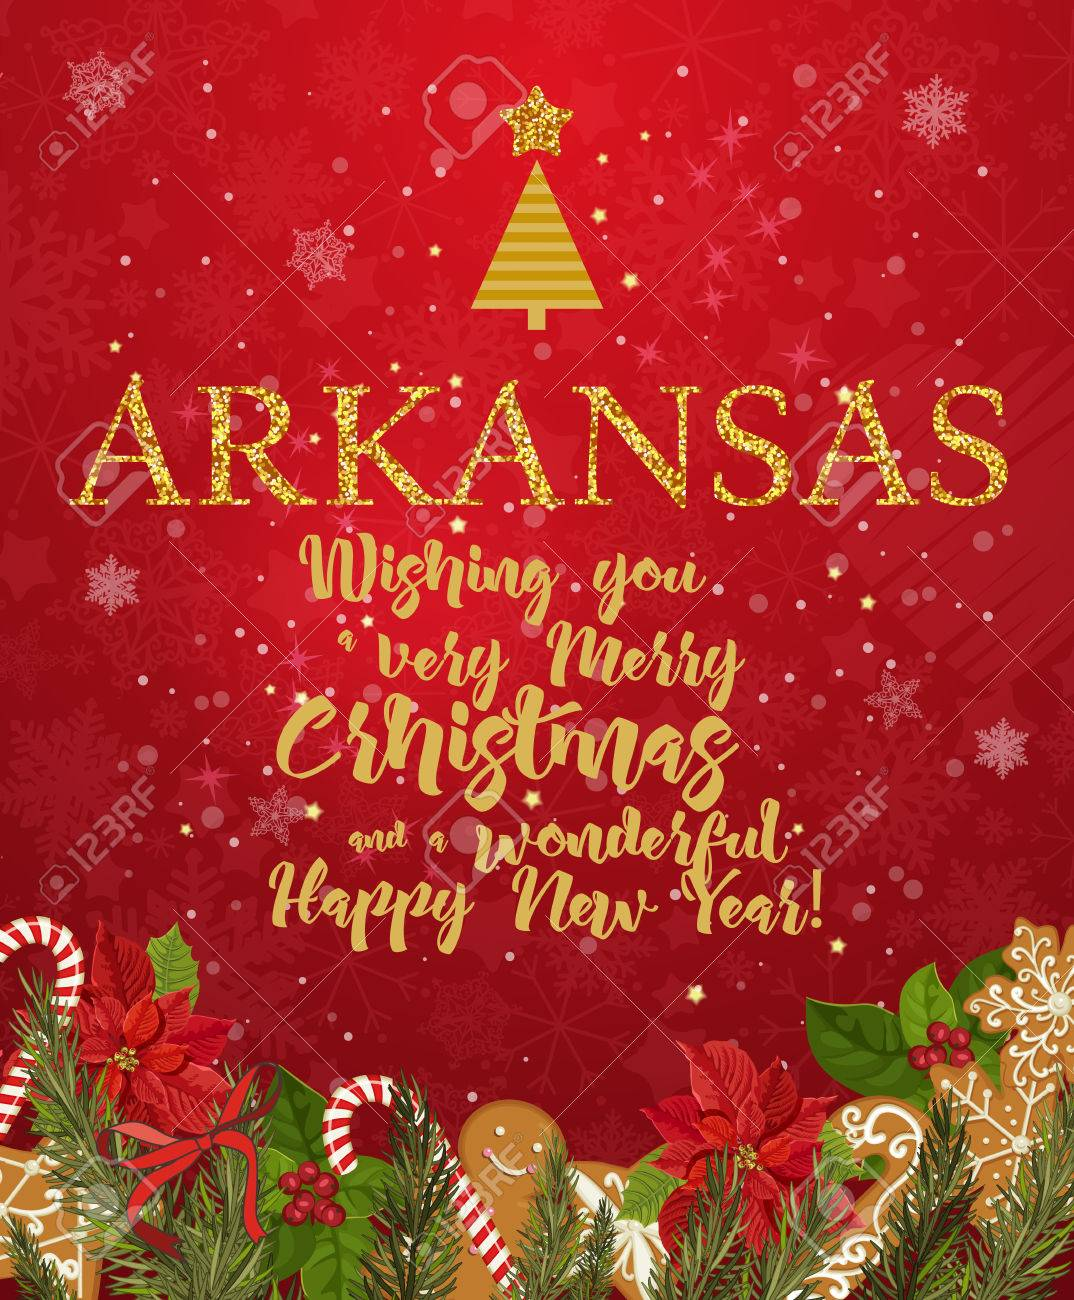 Arkansas merry christmas and a happy new year greeting vector arkansas merry christmas and a happy new year greeting vector card on red background with snowflakes m4hsunfo Image collections